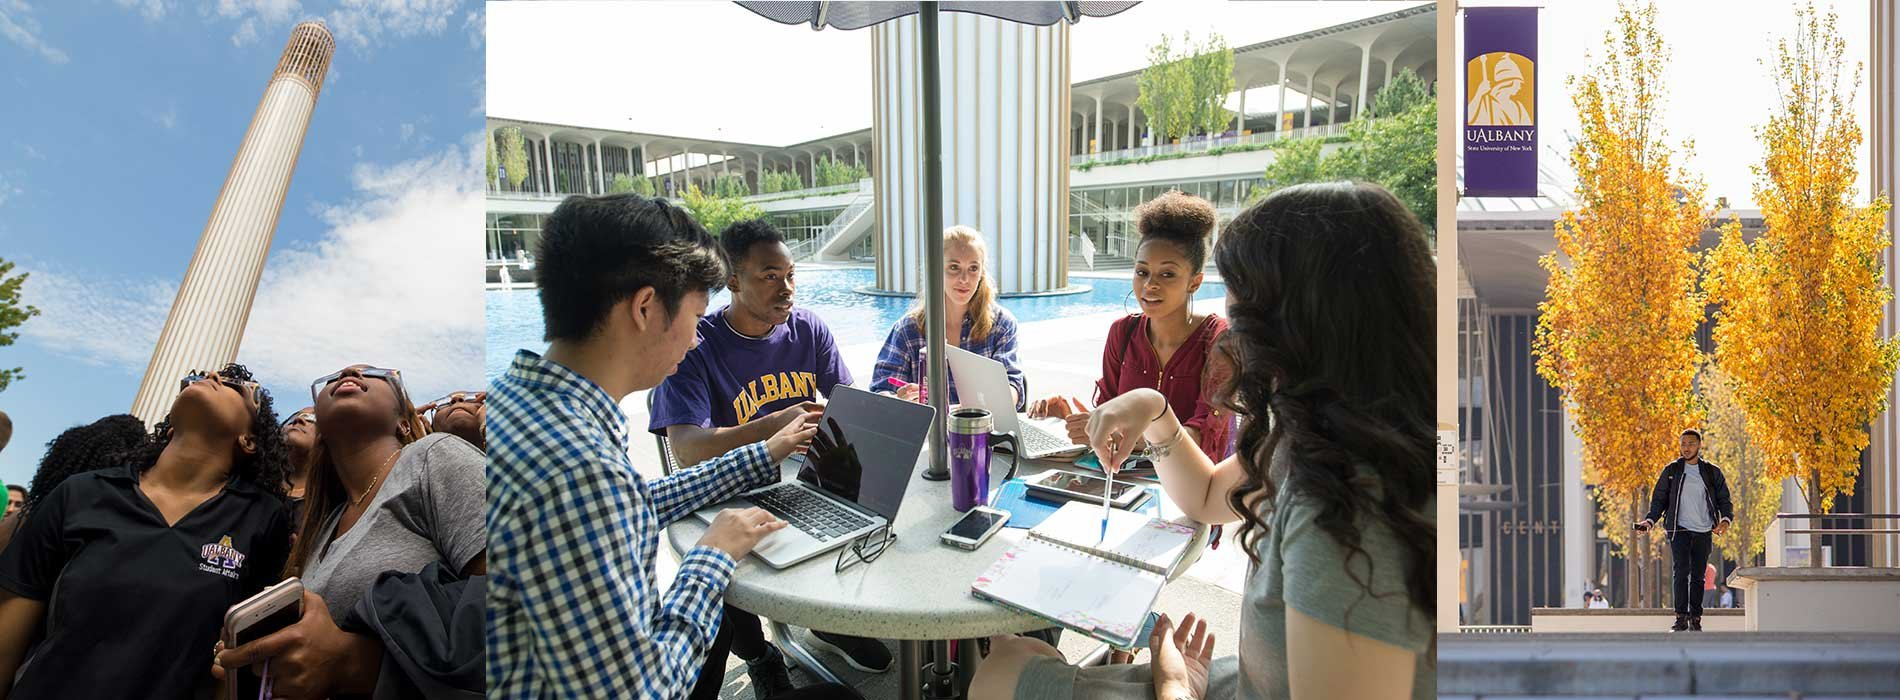 Three images displaying students around the UAlbany Campus